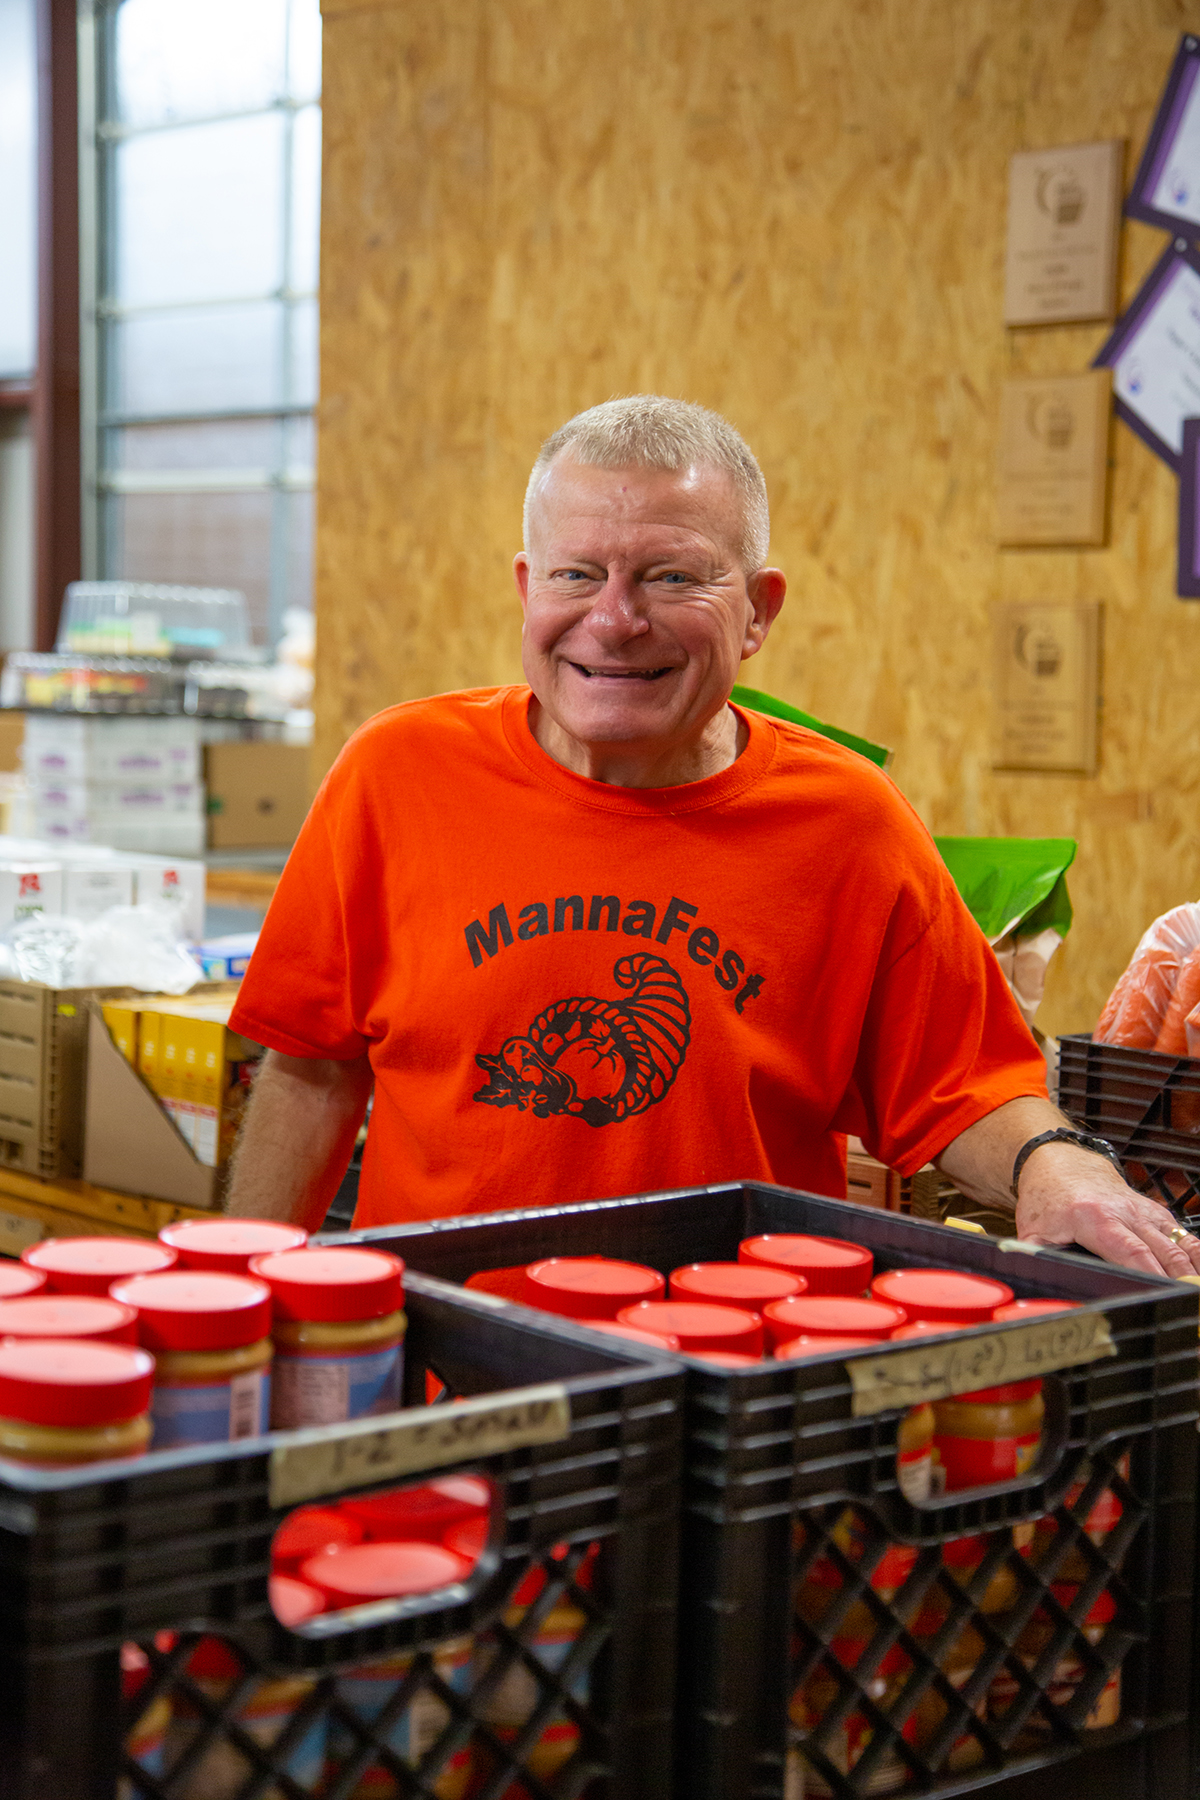 john muzny stocks manna fest shelves in livingston, TX